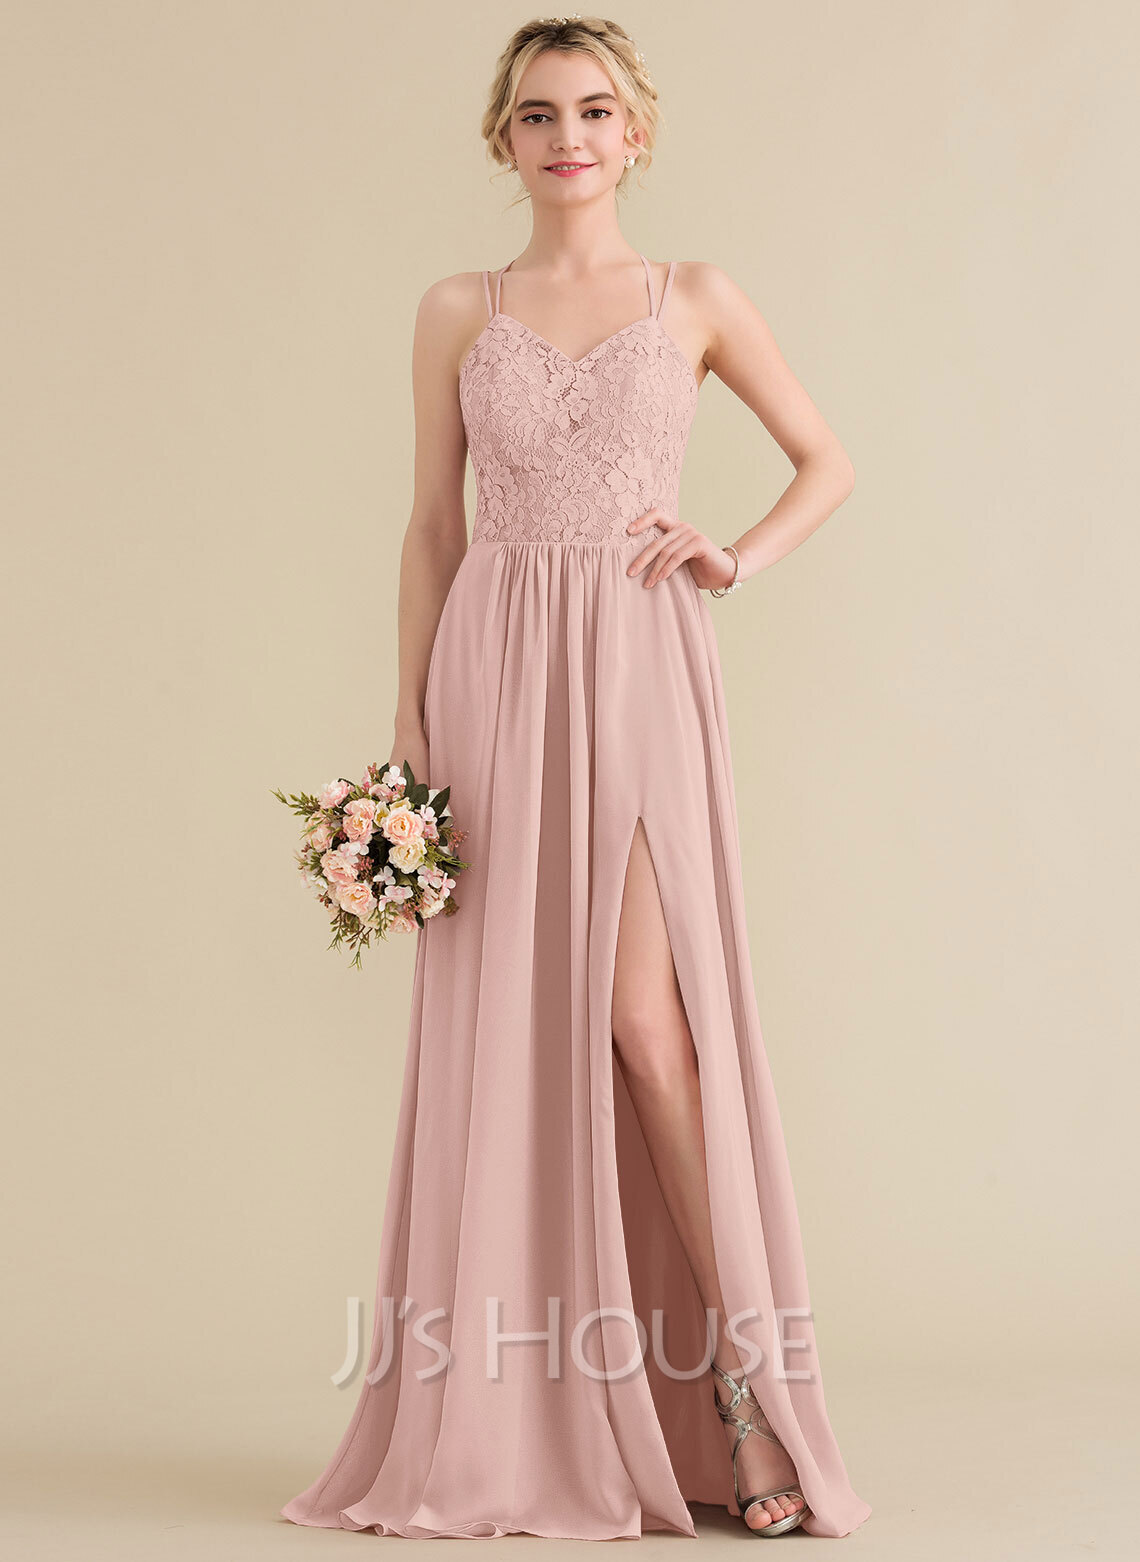 beefe0c359f A-Line Princess Sweetheart Floor-Length Chiffon Lace Bridesmaid Dress With  Split Front. Loading zoom